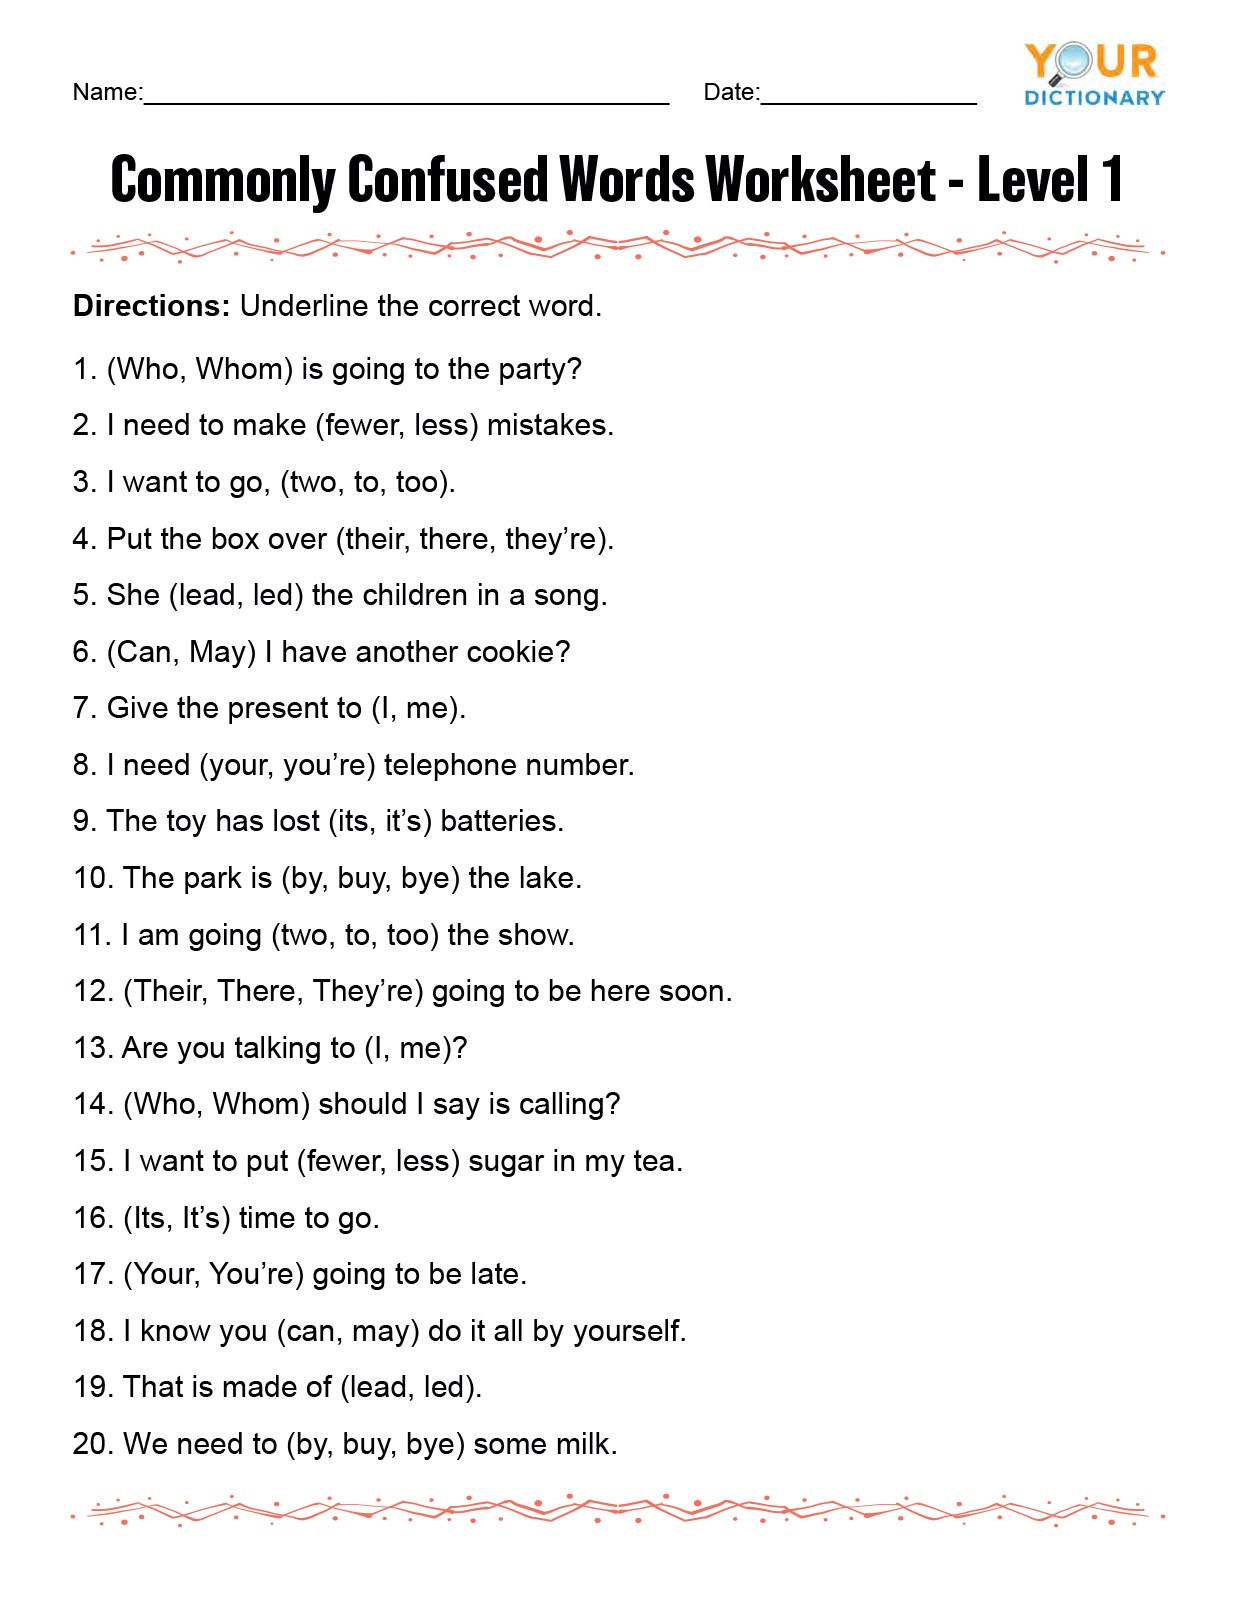 Homophones Worksheet 6th Grade Monly Confused Words Worksheet